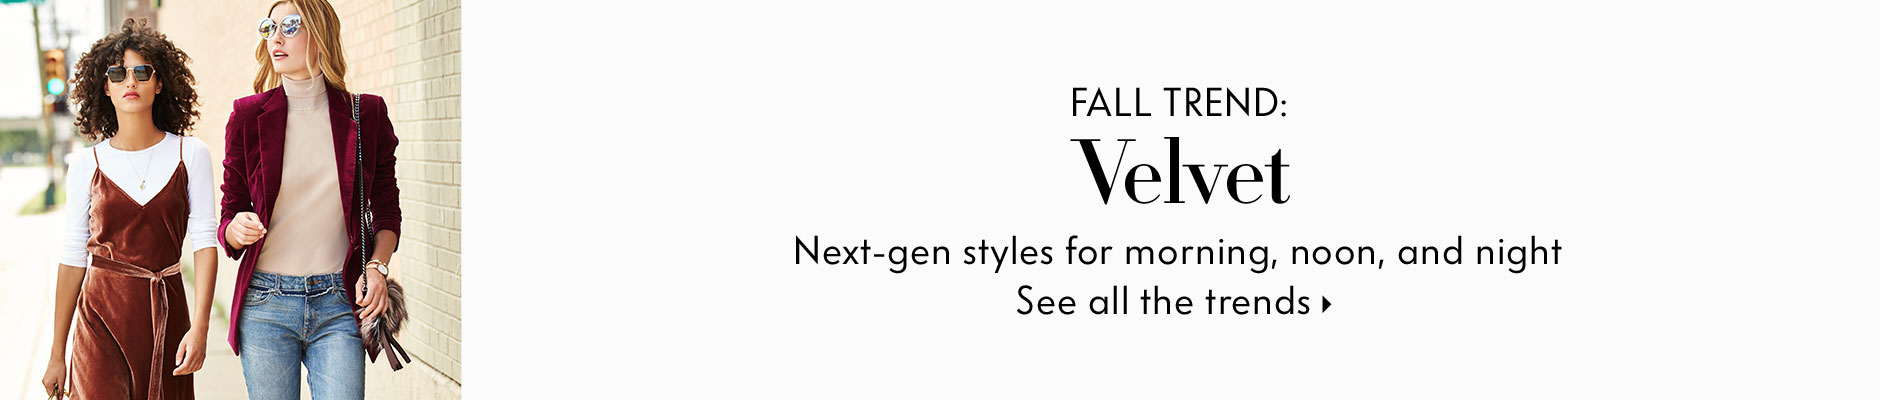 Fall Trend: Velvet - Next-gen styles for morning, noon, and night